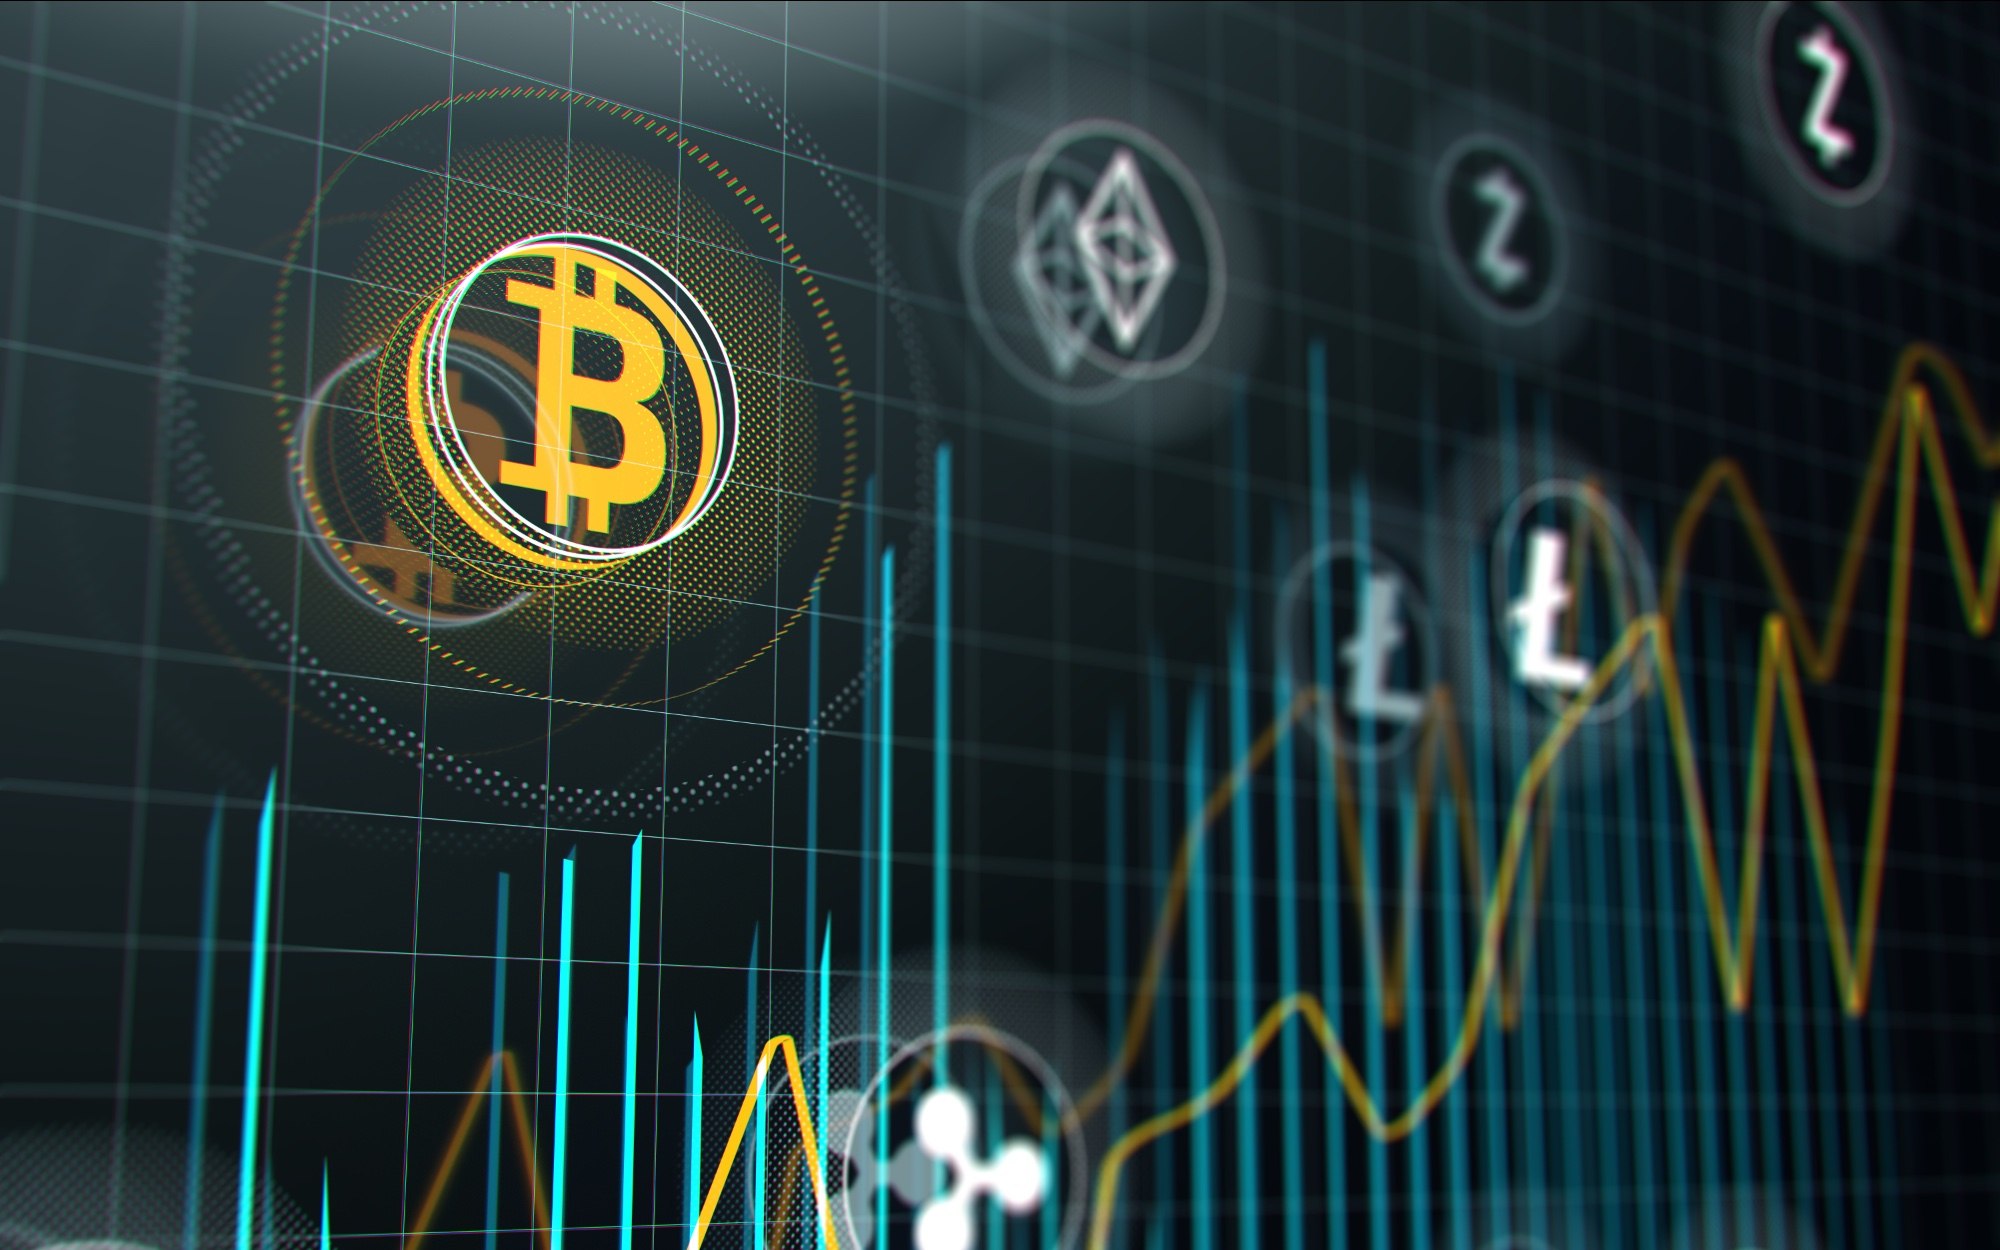 How Cryptocurrency Prices Are Being Manipulated By Bots